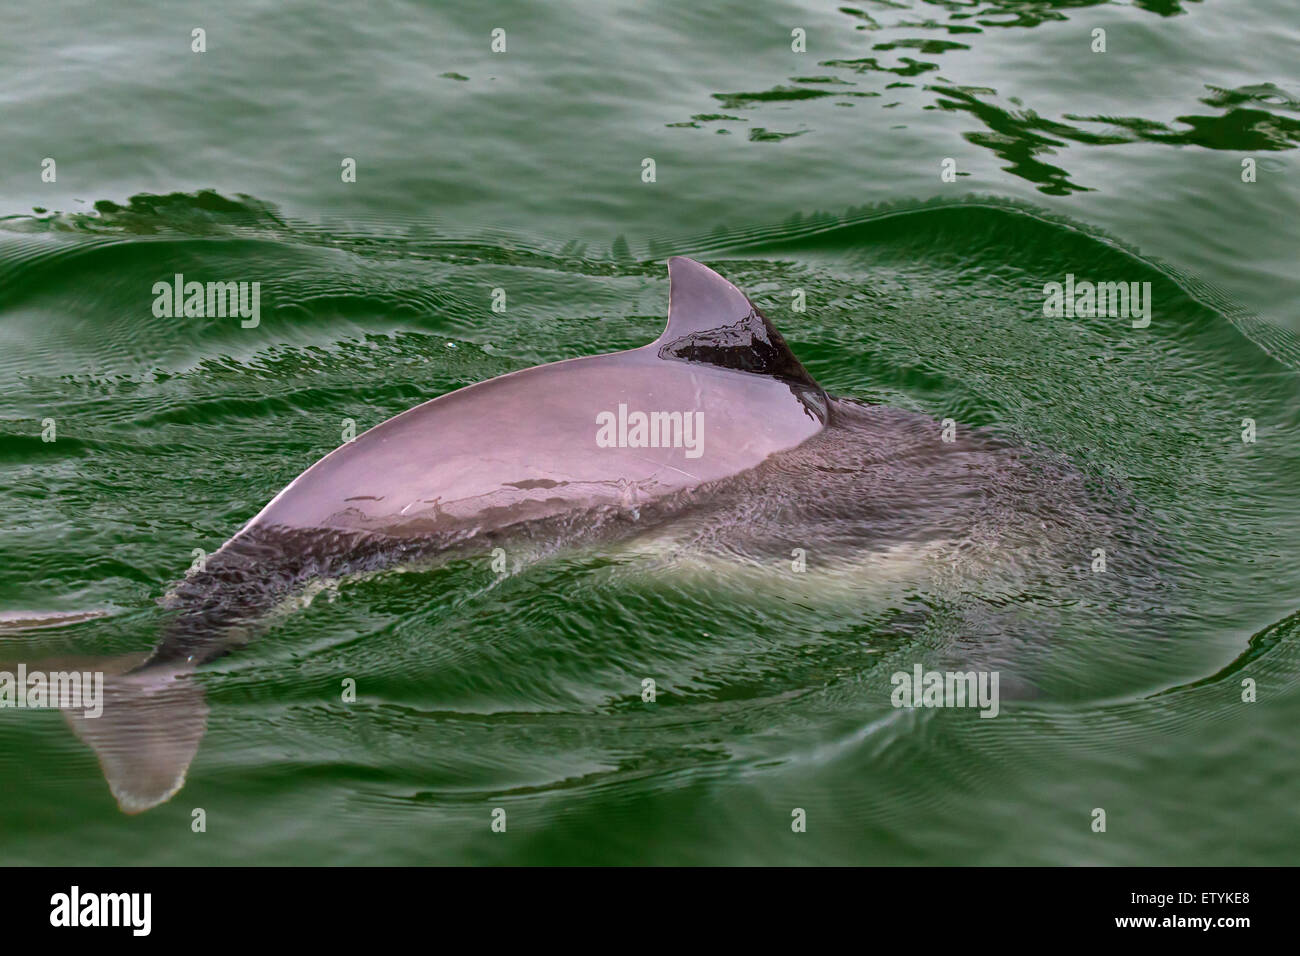 Harbour porpoise (Phocoena phocoena) surfacing and showing triangular dorsal fin - Stock Image